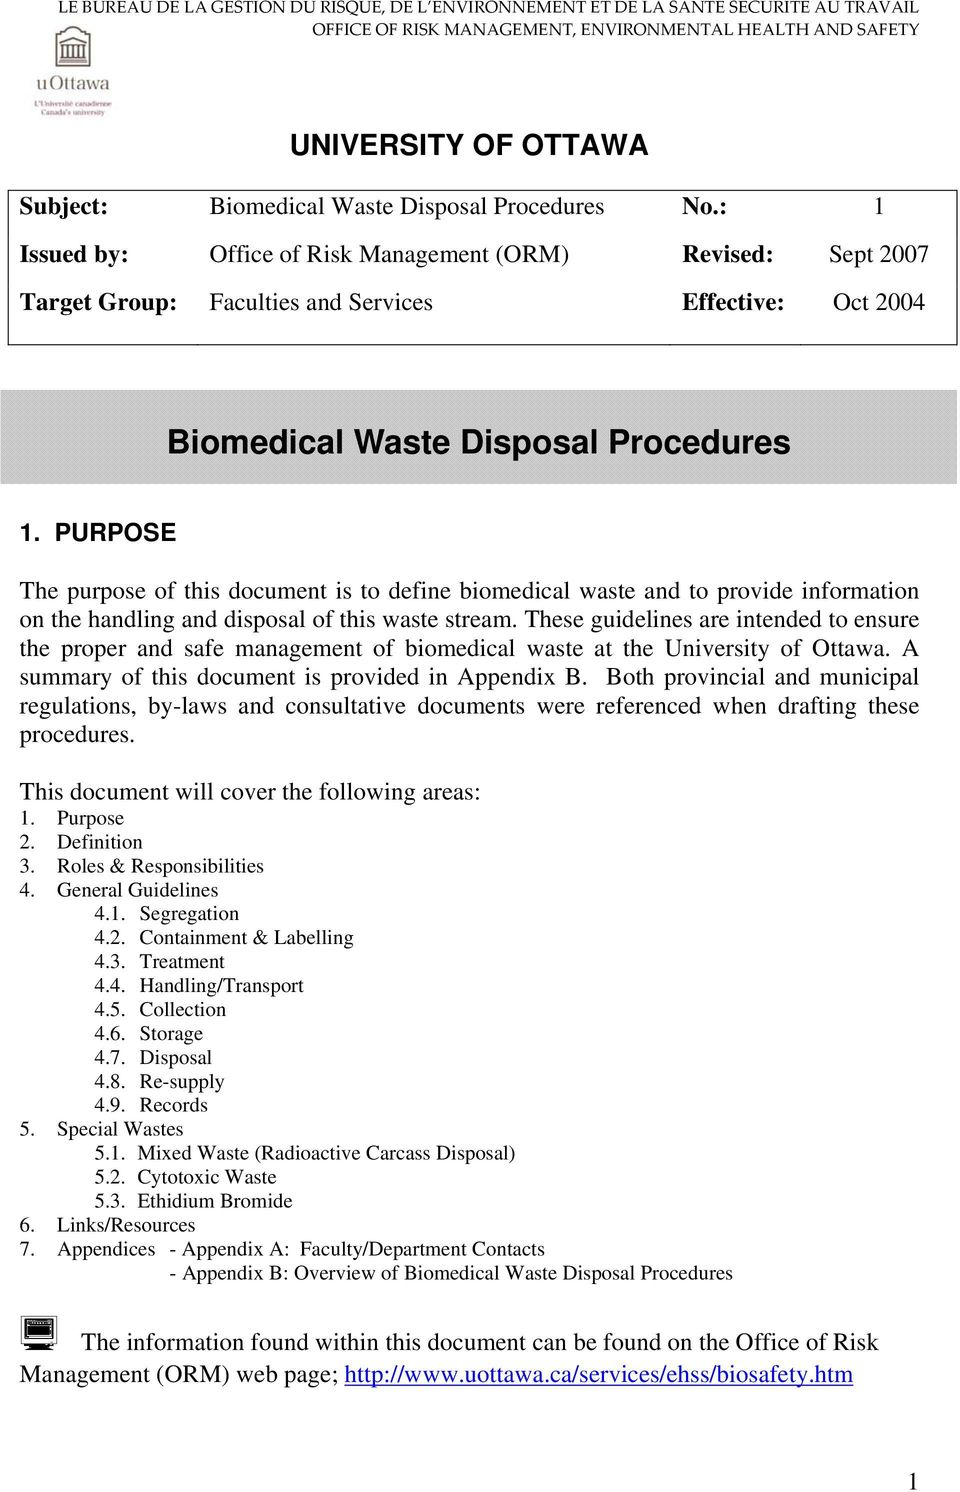 PURPOSE The purpose of this document is to define biomedical waste and to provide information on the handling and disposal of this waste stream.